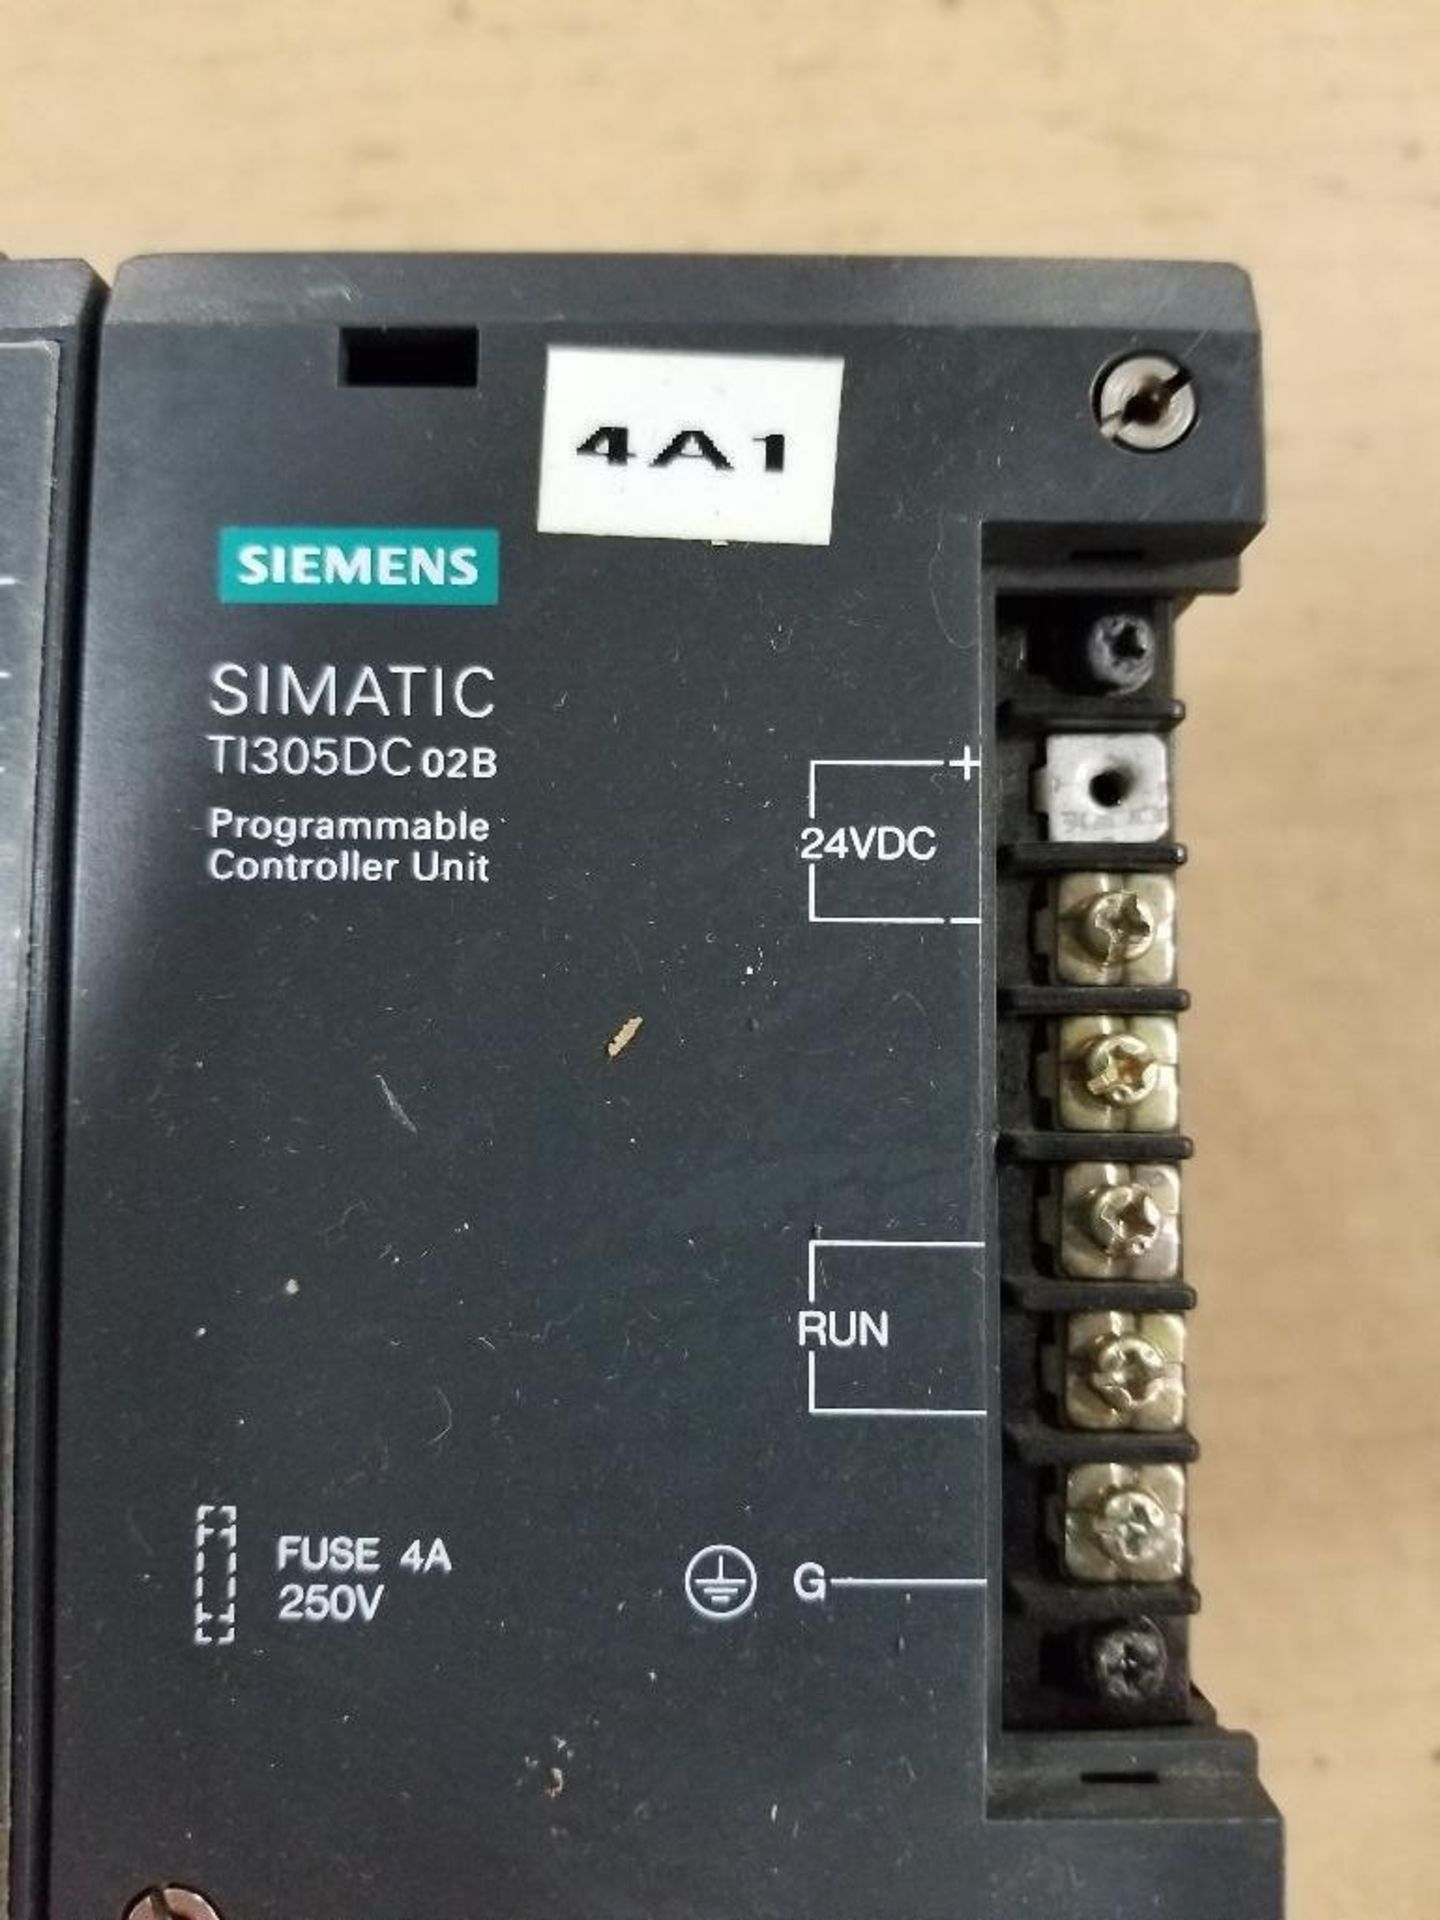 Siemens SIMATIC TI305DC02b Programmable Controller unit. DL330 CPU. - Image 2 of 6